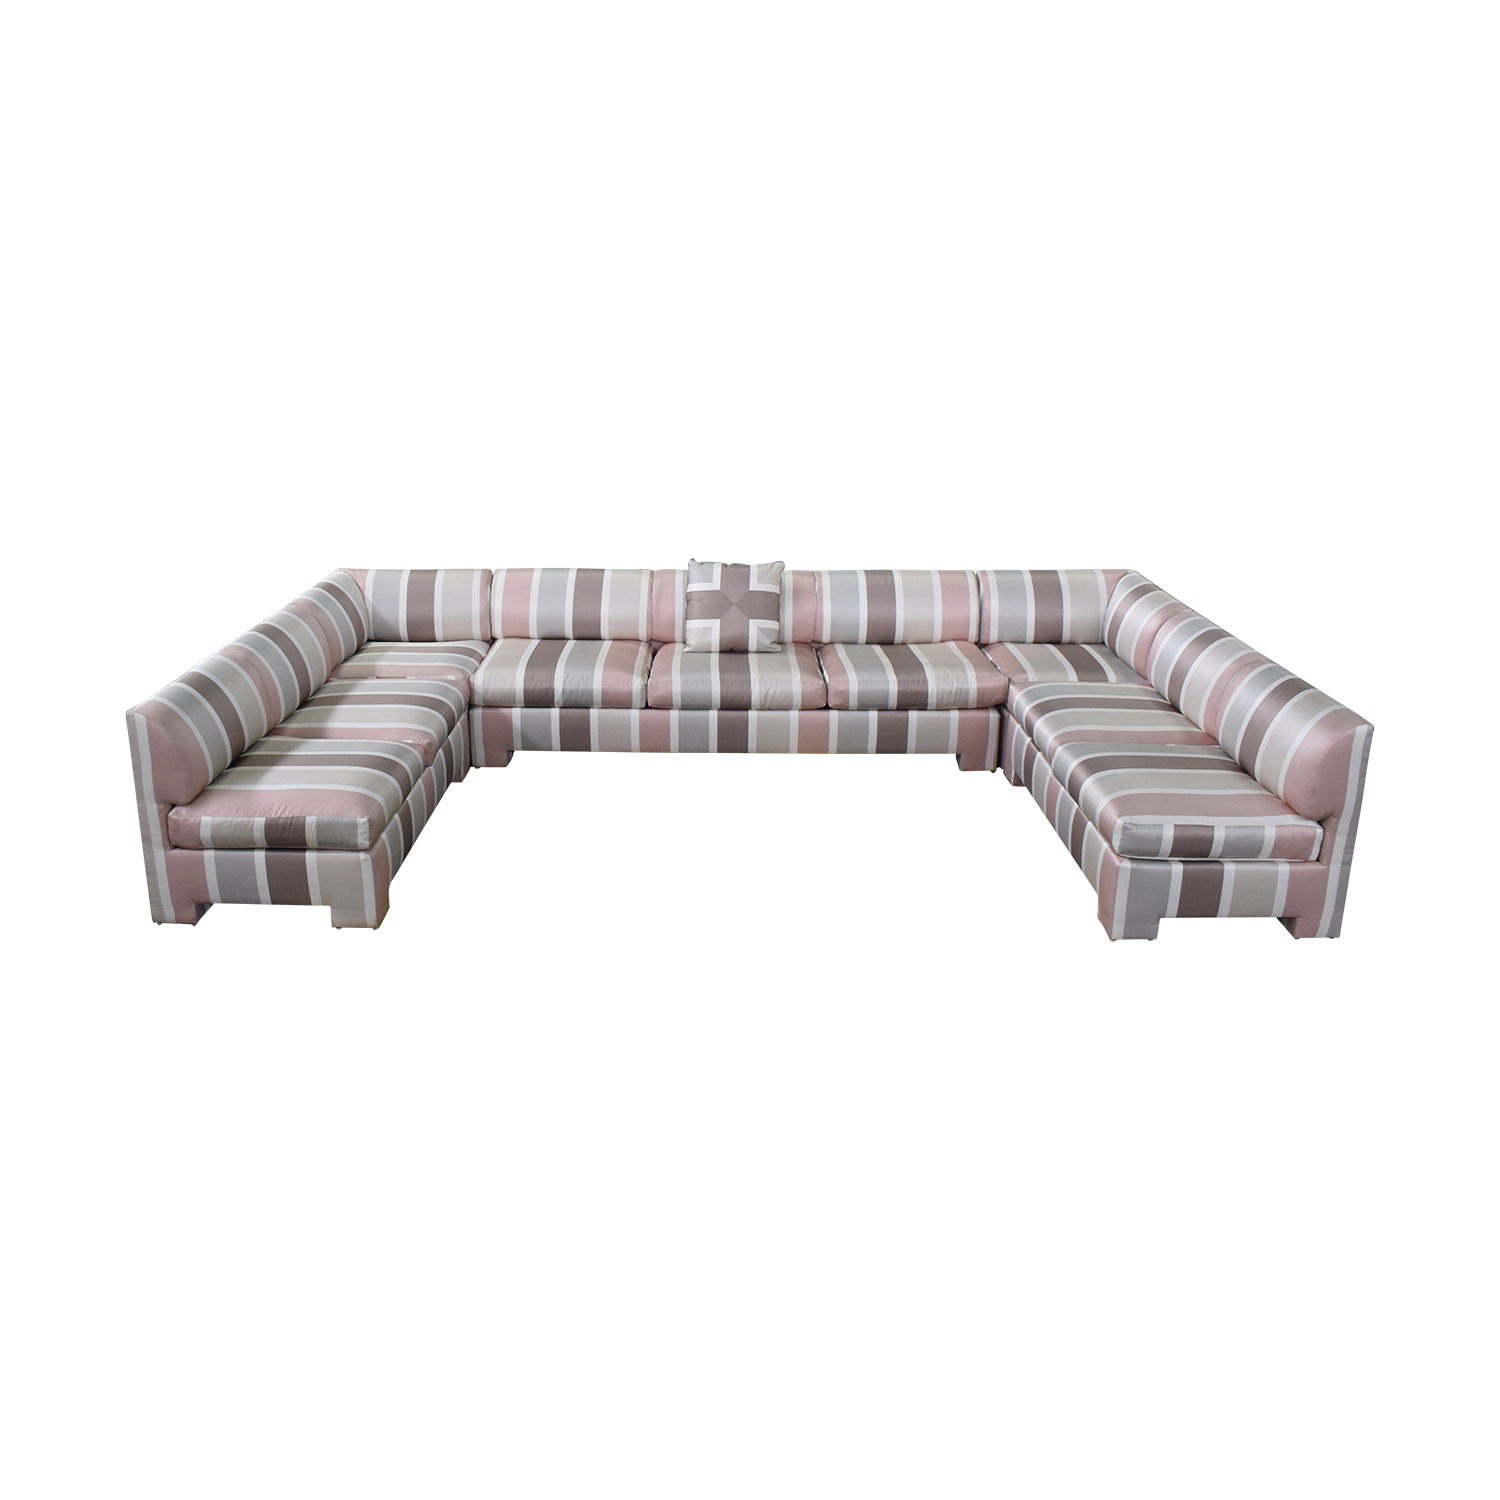 buy  Custom Pink Striped Sectional Sofa online